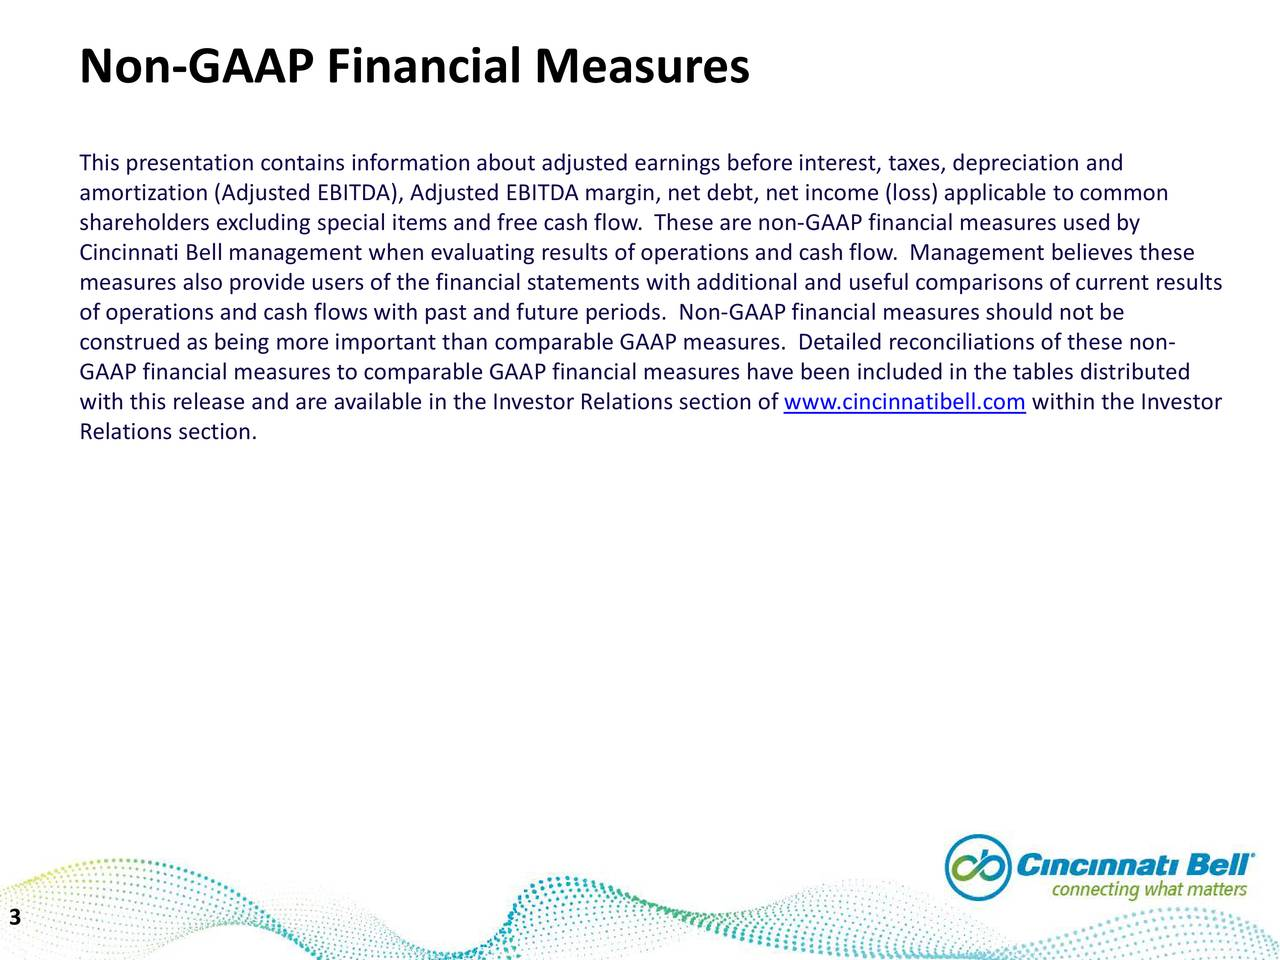 This presentation contains information about adjusted earnings before interest, taxes, depreciation and amortization (Adjusted EBITDA), Adjusted EBITDA margin, net debt, net income (loss) applicable to common shareholders excluding special items and free cash flow. These areGAAP financial measures used by Cincinnati Bell management when evaluating results of operations and cash flow. Management believes these measures also provide users of the financial statements with additional and useful comparisons of current results of operations and cash flows with past and future periods. Non-GAAP financial measures should not be construed as being more important than comparable GAAP measures. Detailed reconciliations of these non- GAAP financial measures to comparable GAAP financial measures have been included in the tables distributed with this release and are available in the Investor Relations section ofinnatibell.comwithin the Investor Relations section. 3